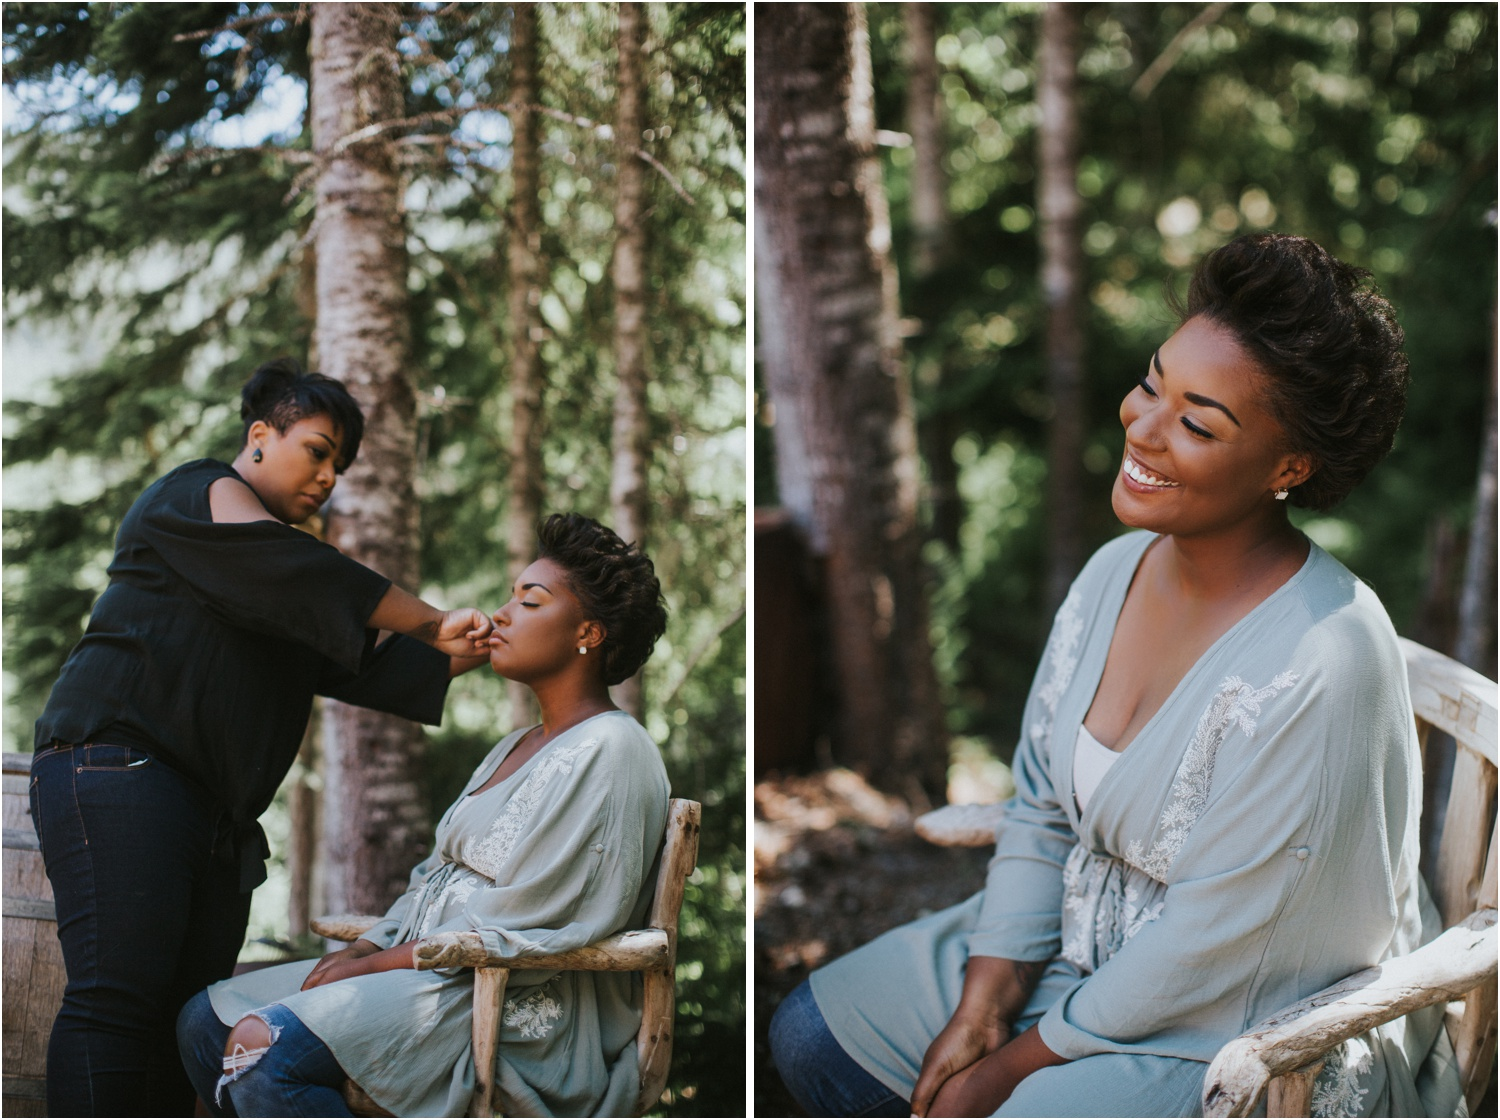 lovestoriesco-amber-phinisee-seattle-mount-rainier-elopement_0015.jpg